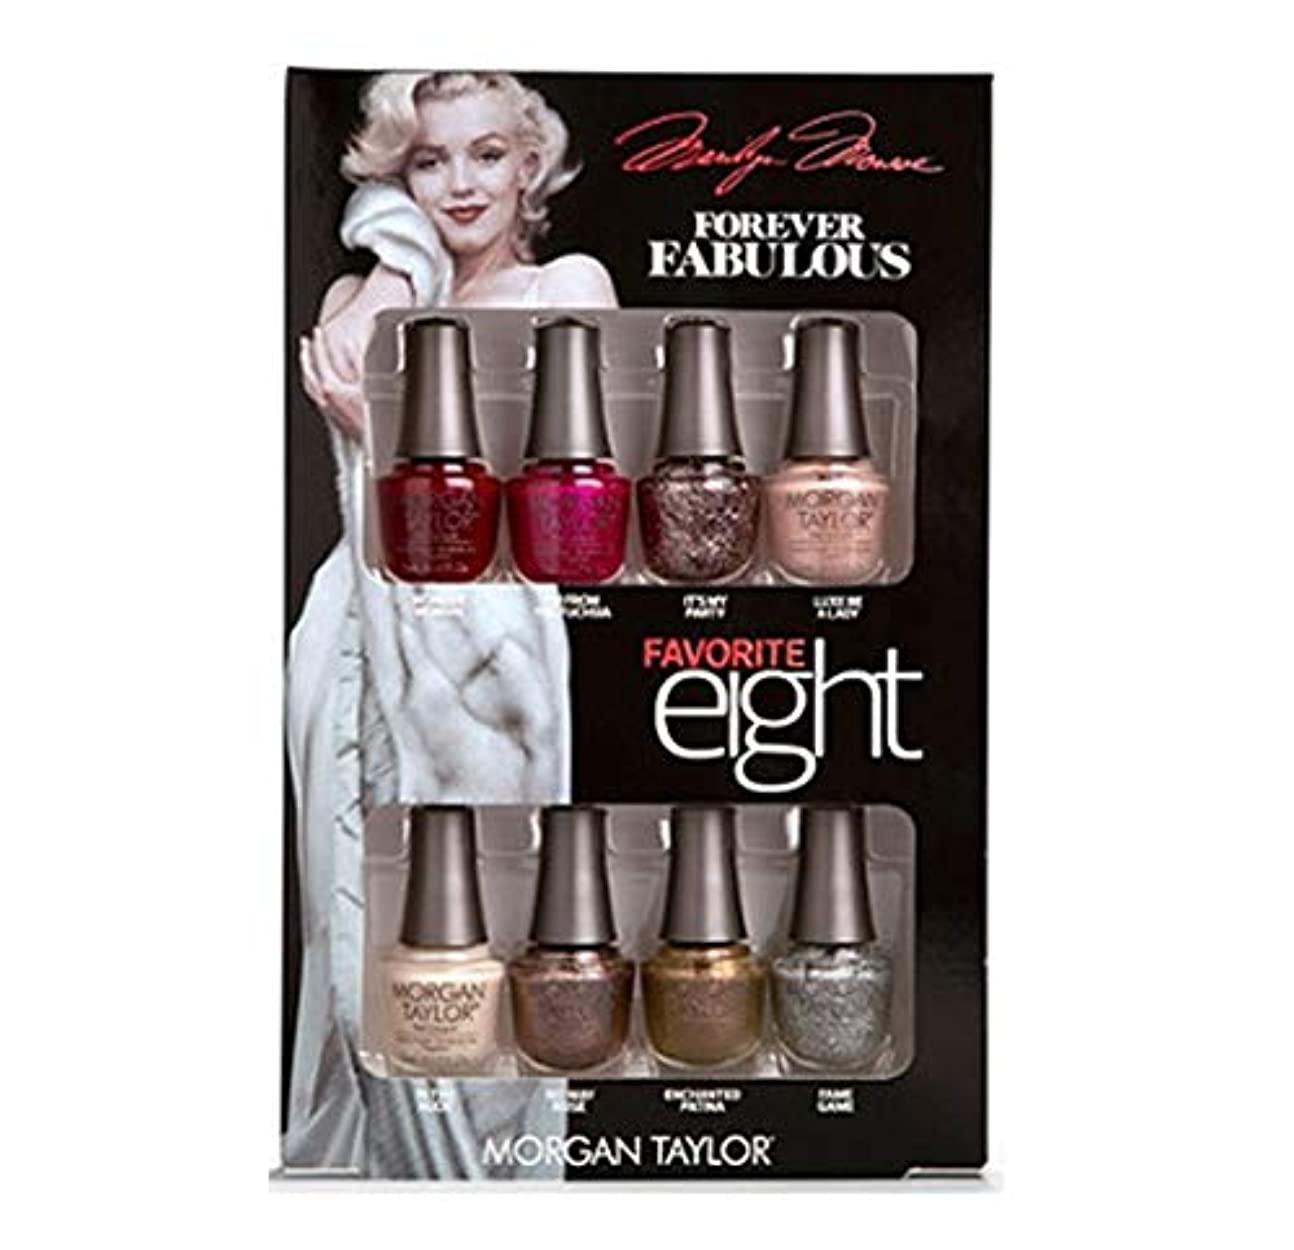 ブランド名ドラッグ採用Morgan Taylor - Forever Fabulous Marilyn Monroe - Mini 8 Pack - 5 mL / 0.17 oz Each